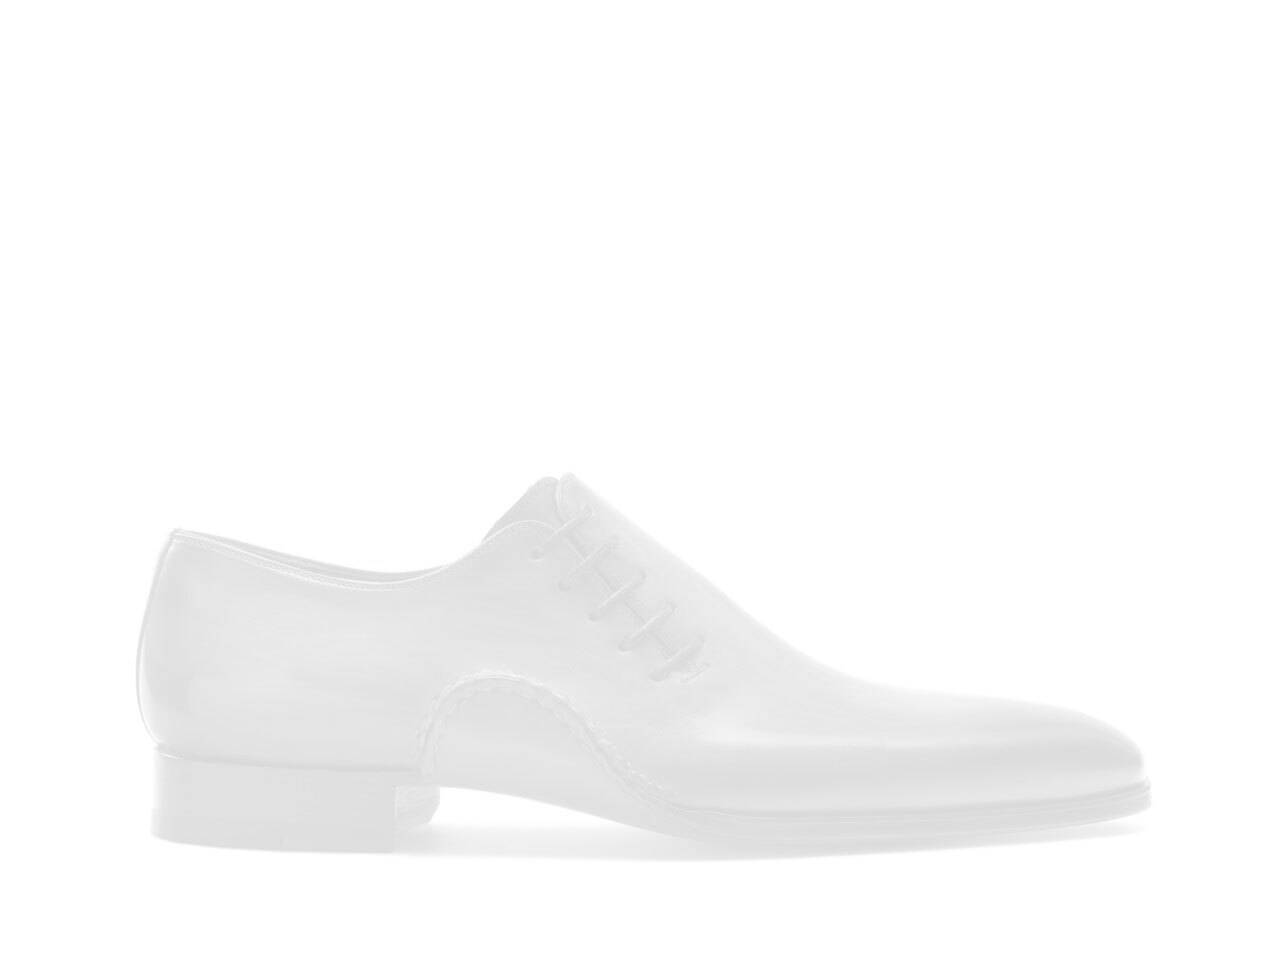 Pair of the Magnanni Echo Lo White and Navy Men's Sneakers